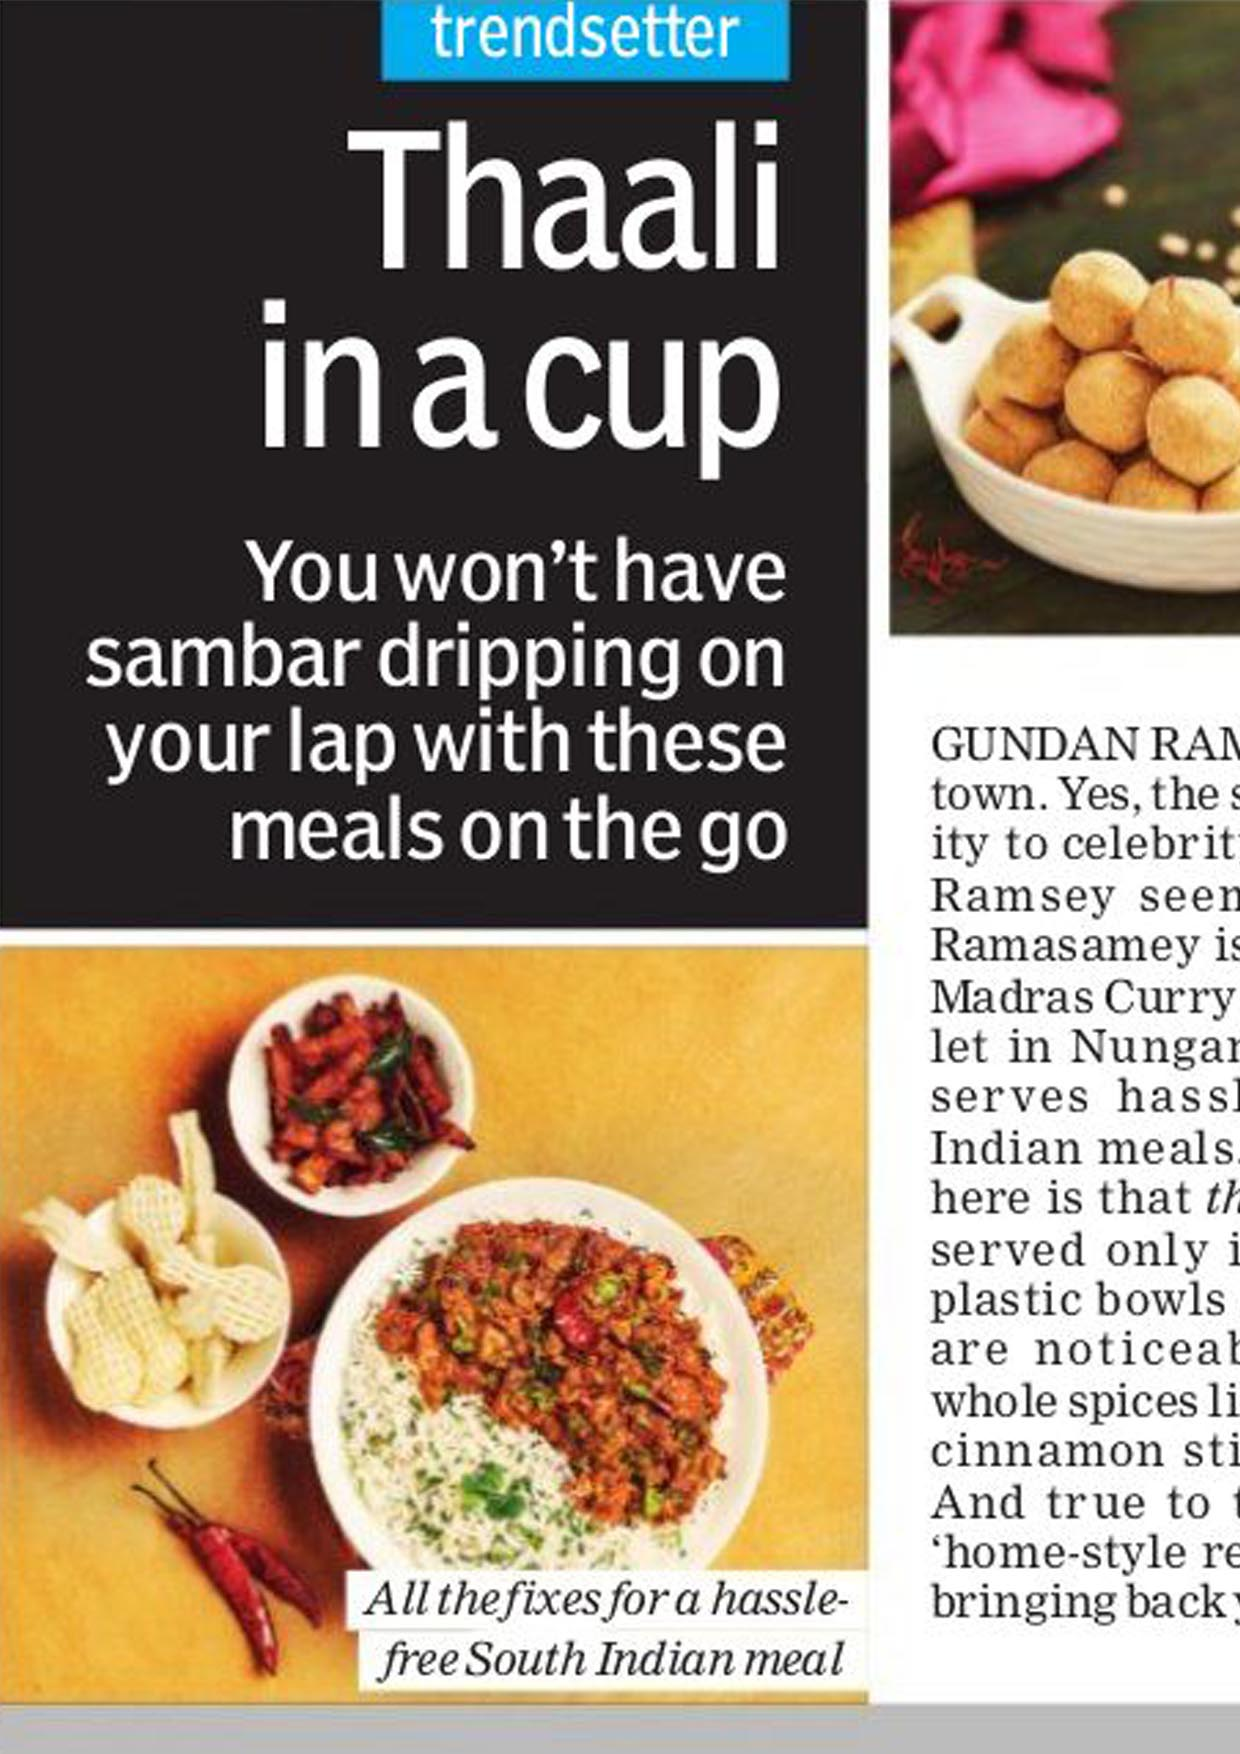 Madras curry cup-New Indian Exress